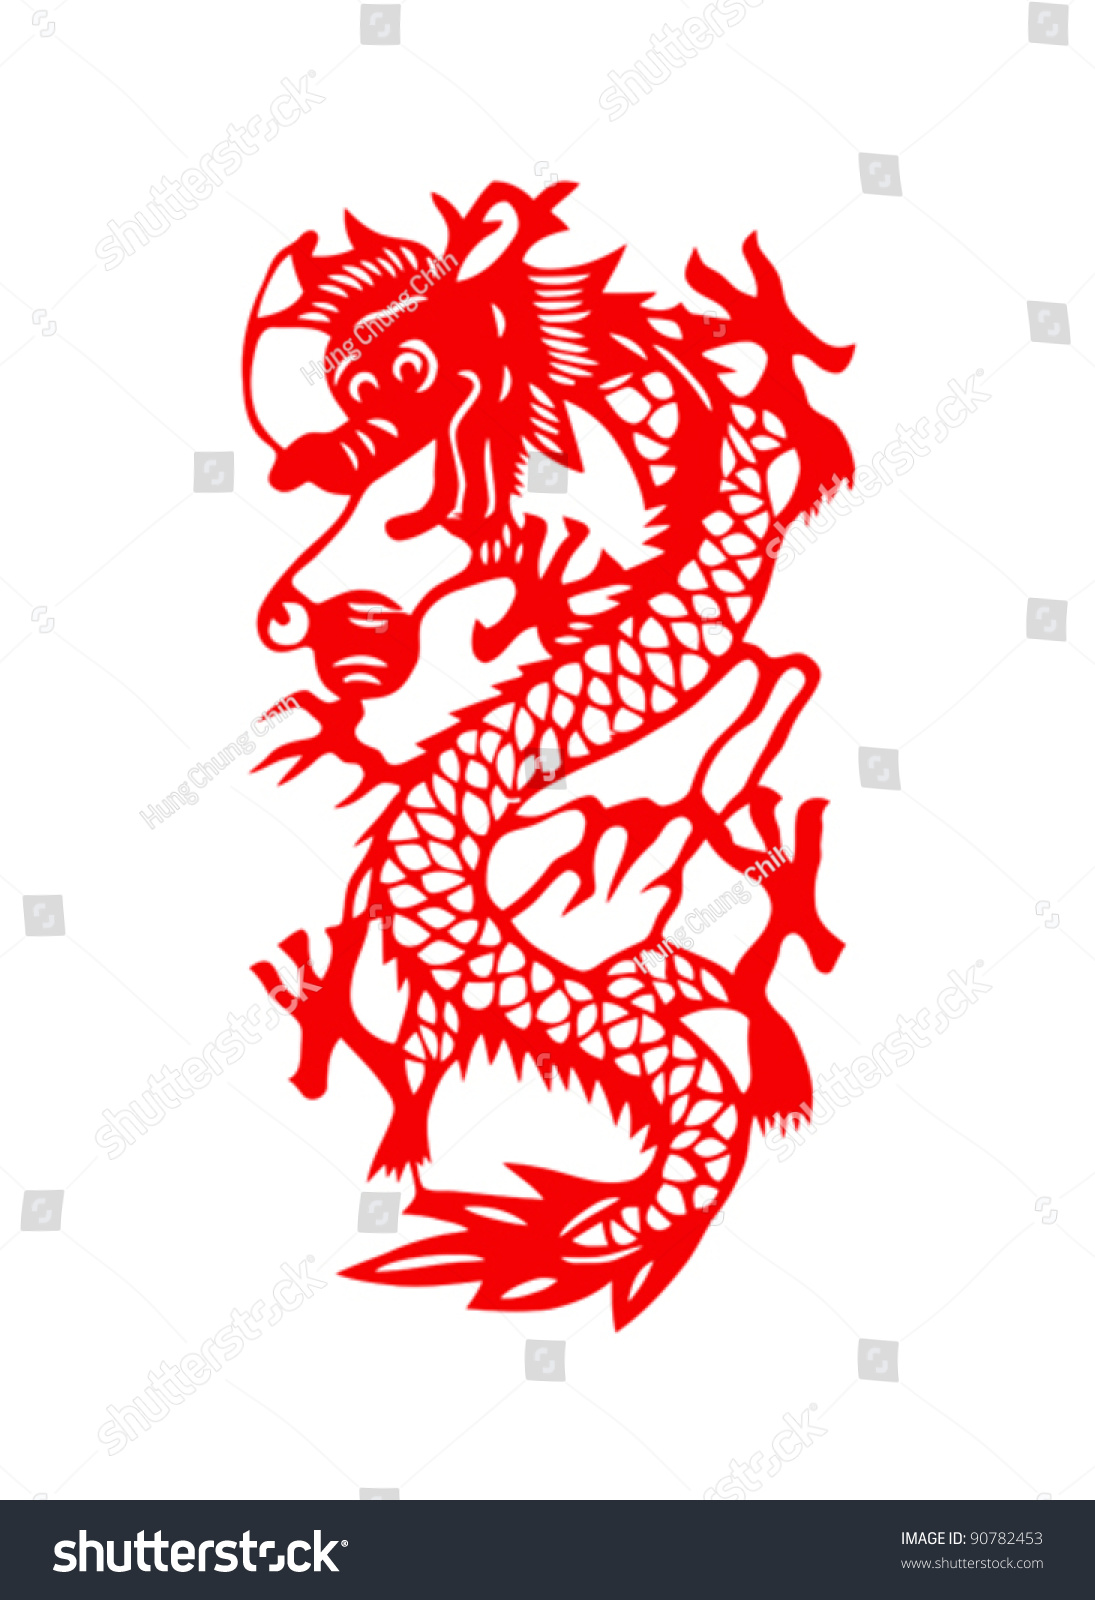 Dragon paper cut chinese new year stock vector 90782453 for Chinese paper cutting templates dragon